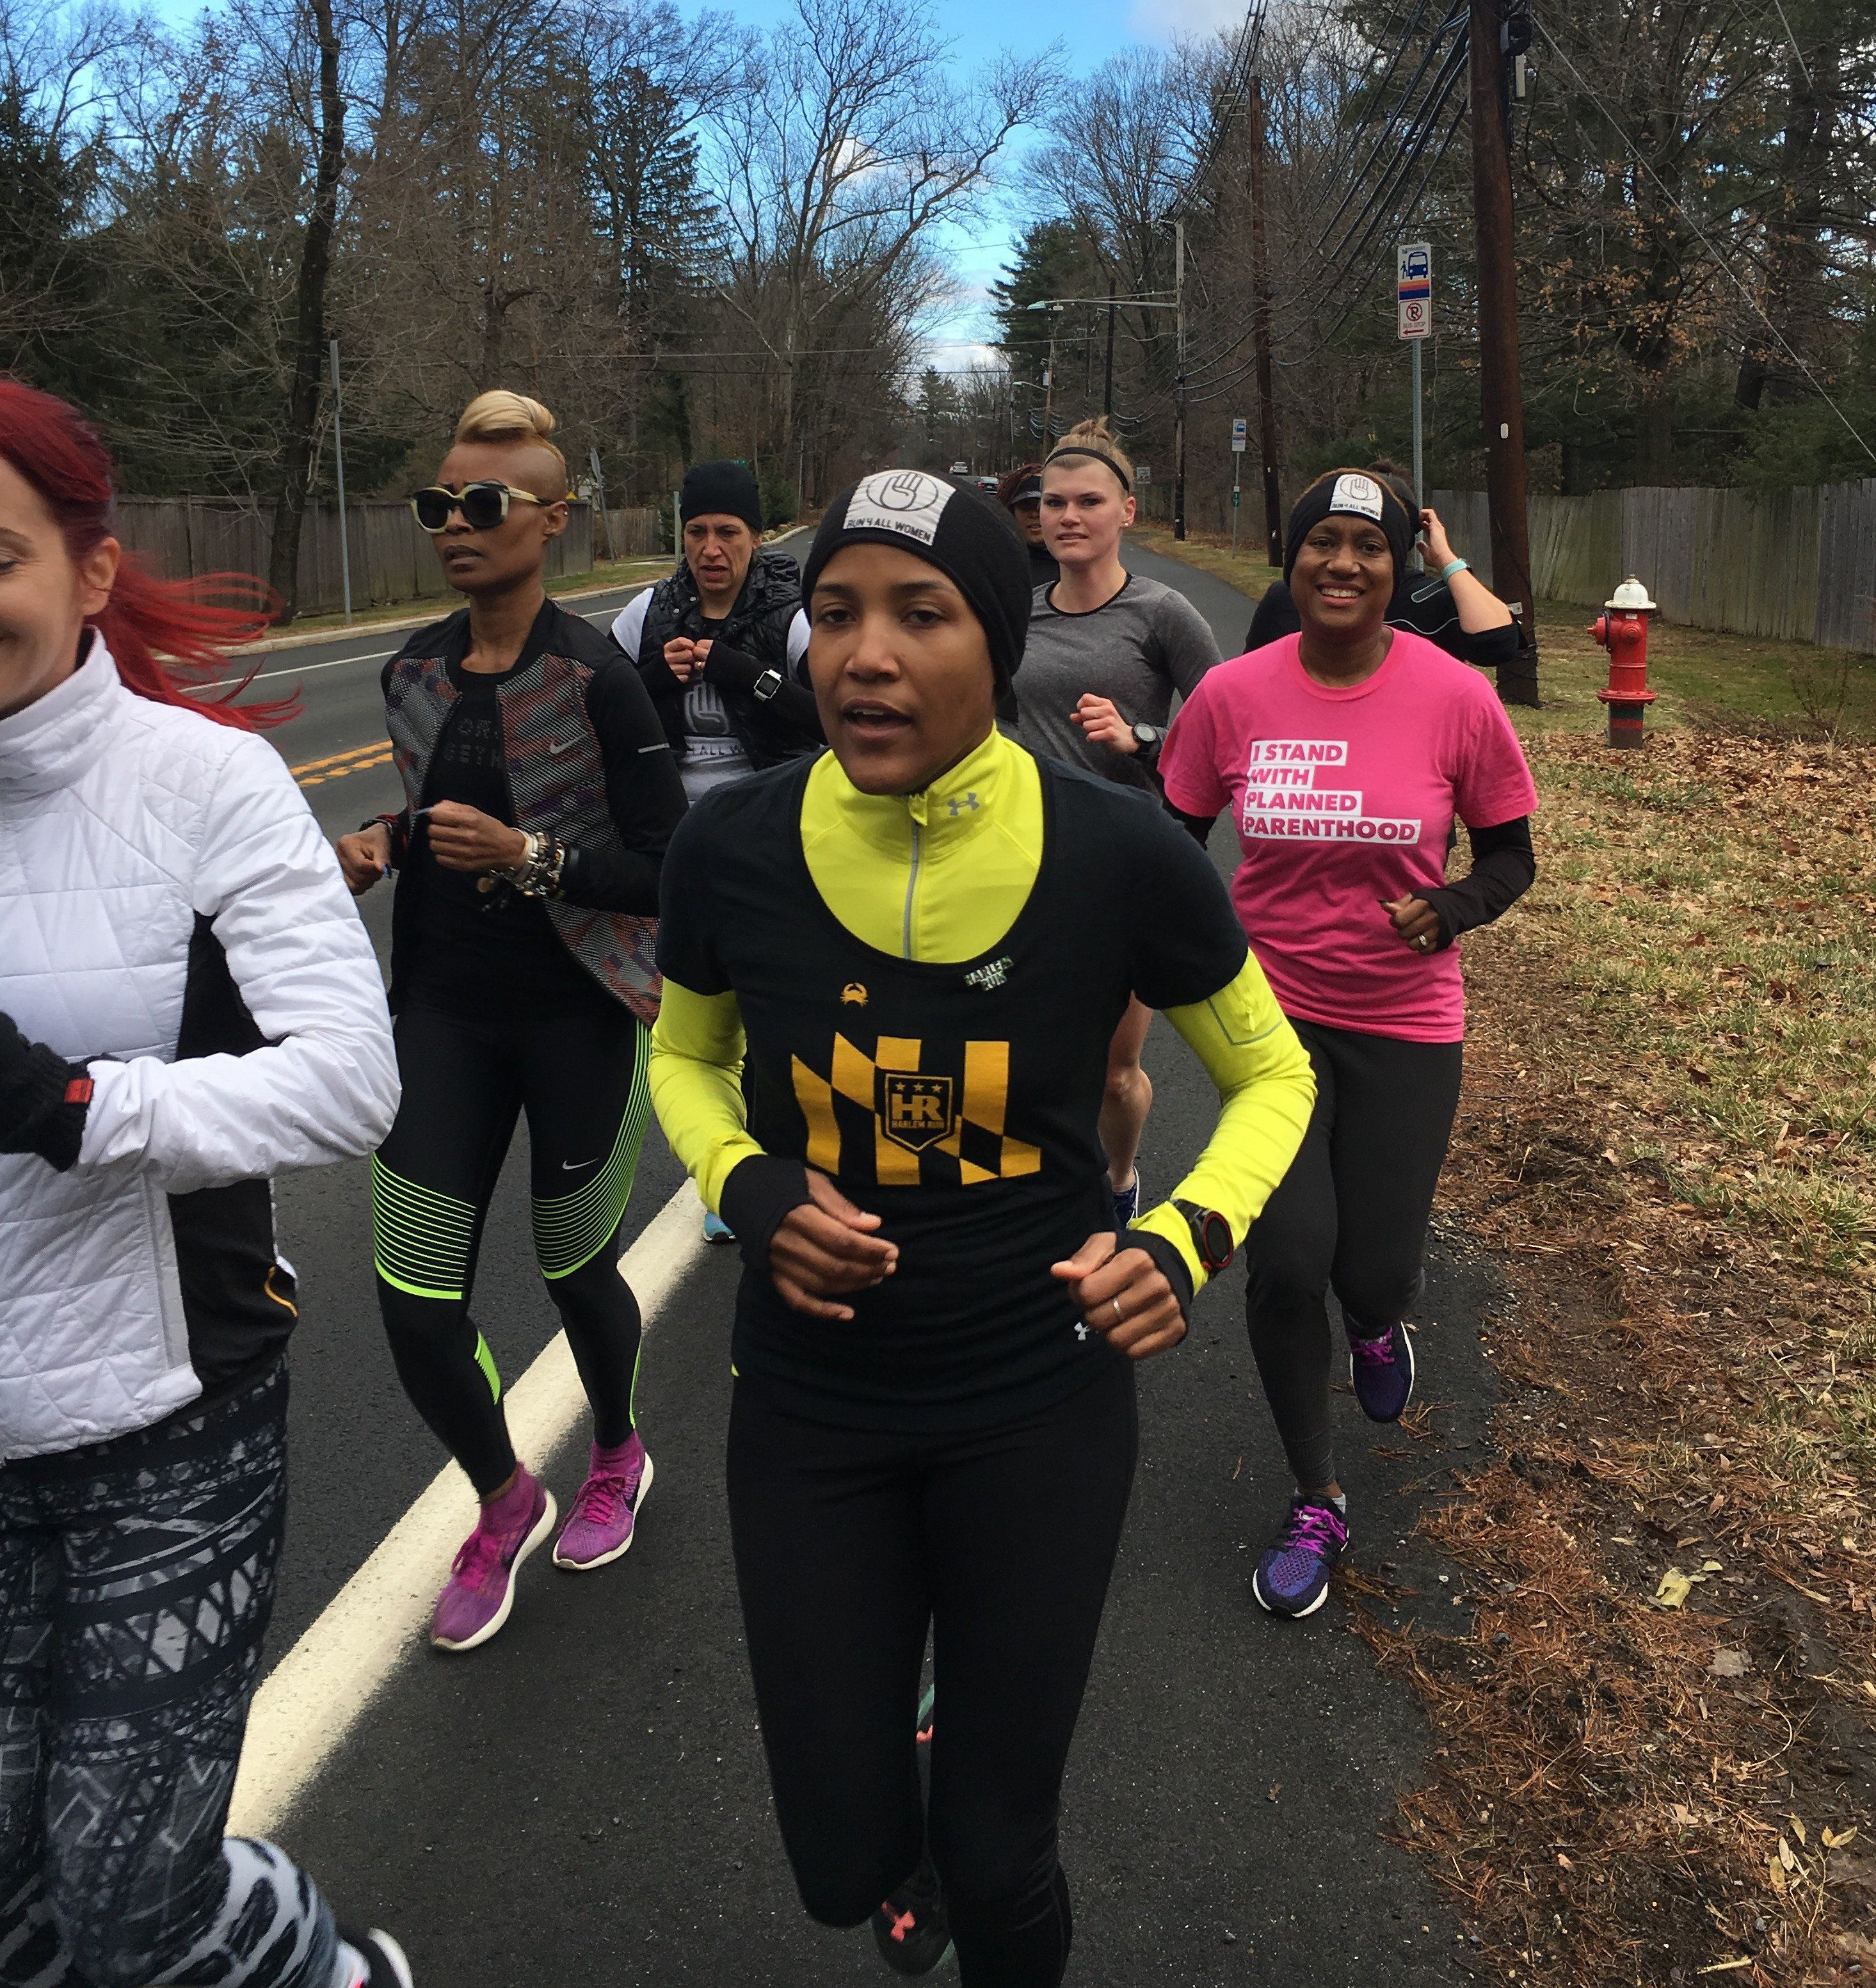 Alison Désir (in yellow) runs part of the 240-mile relay from Harlem New York City, to Washington D.C., that she organ